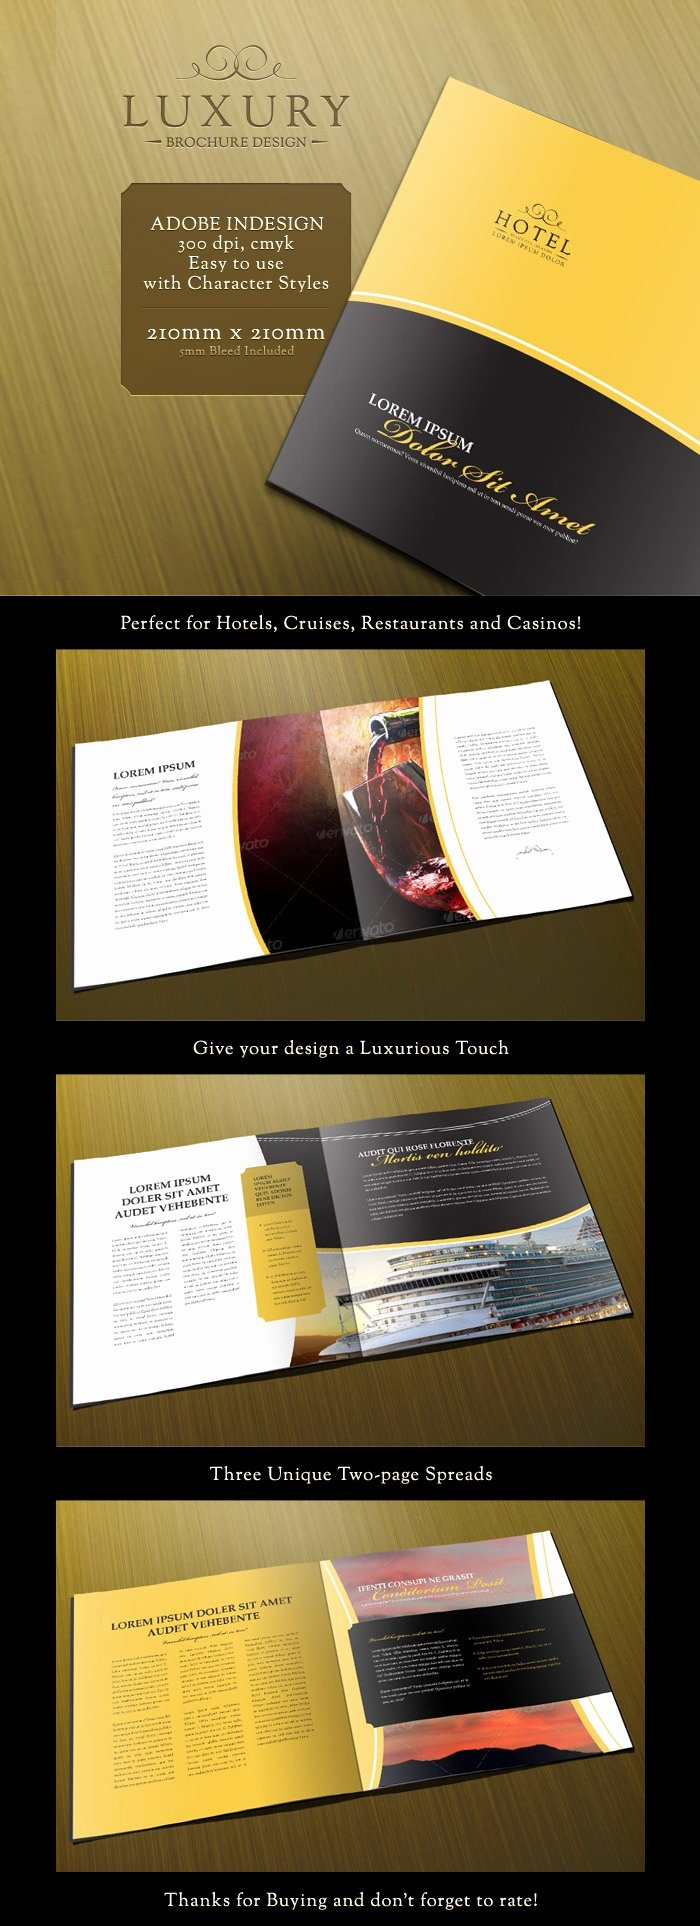 Conference Program Booklet Template Beautiful 59 Best Conference Brochure Images On Pinterest